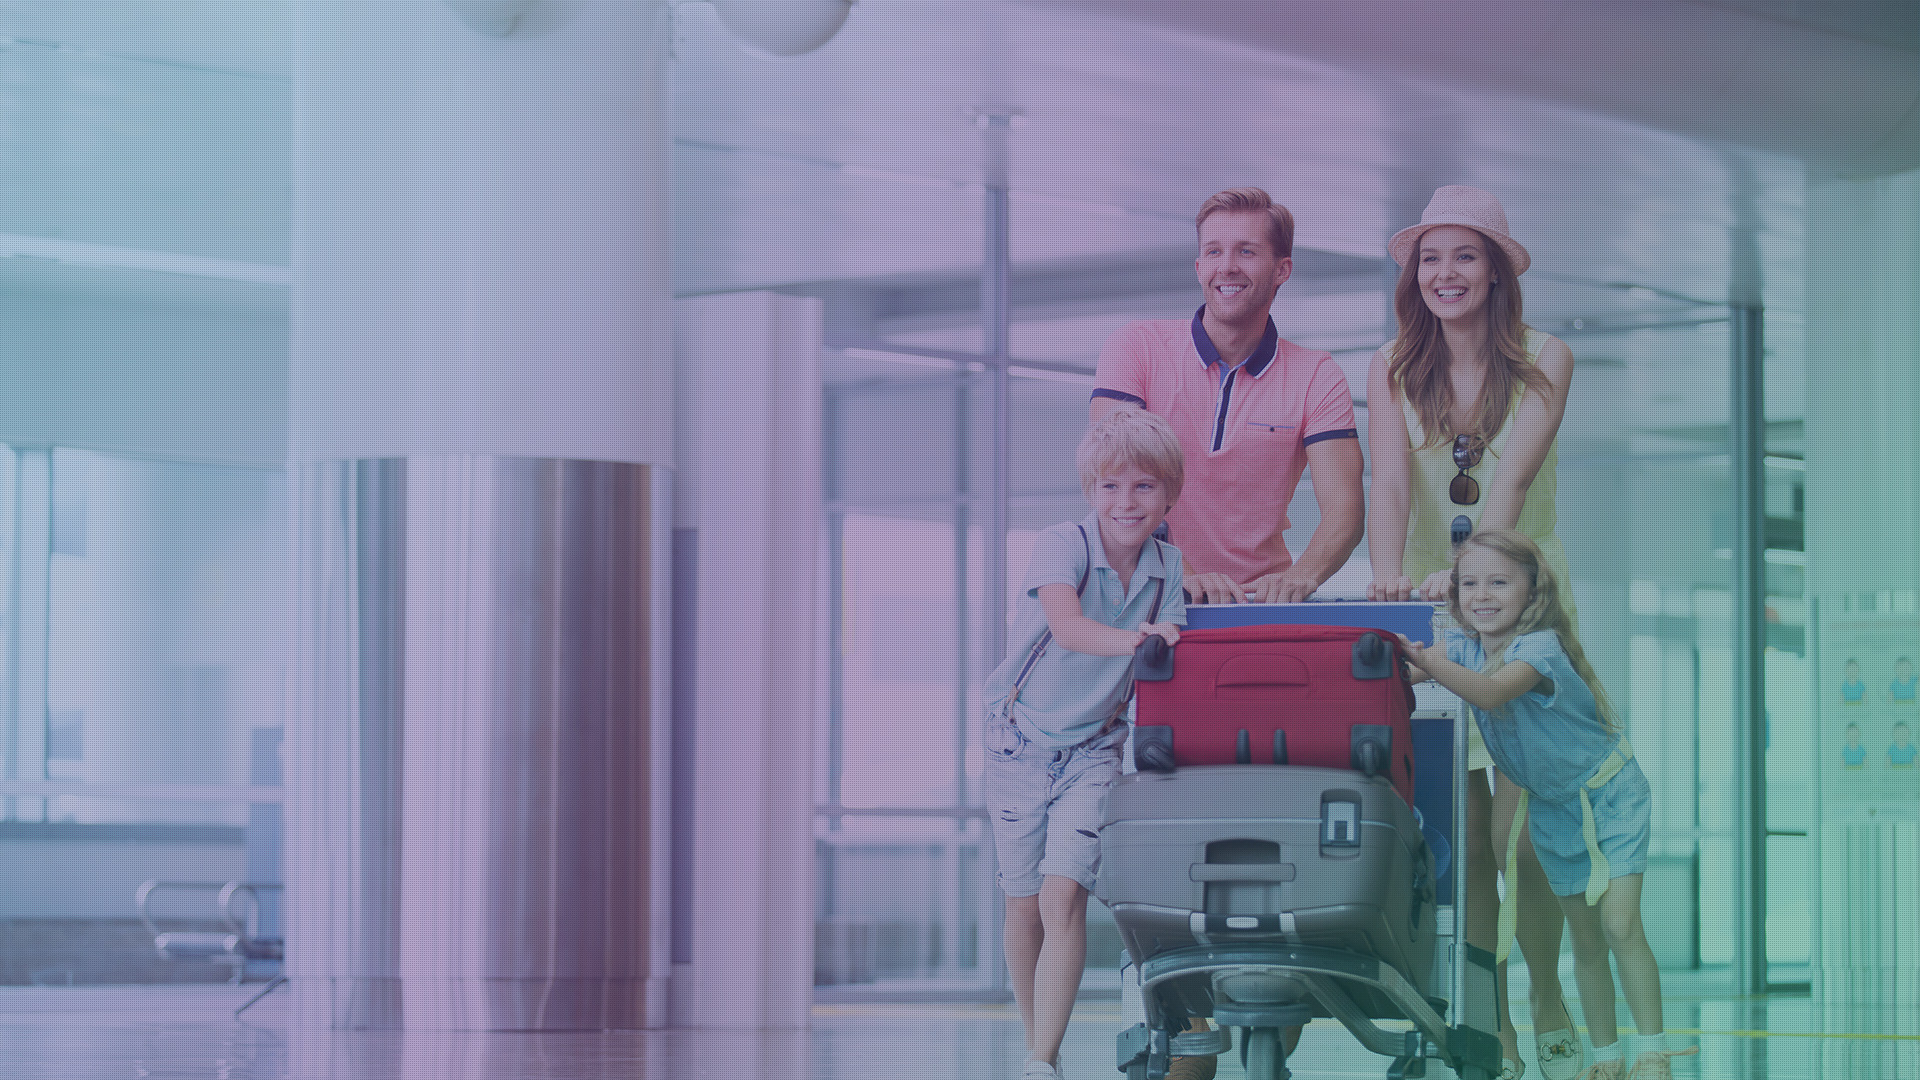 Baryons provides a complete information solution for the Travel and Tourism Industry.